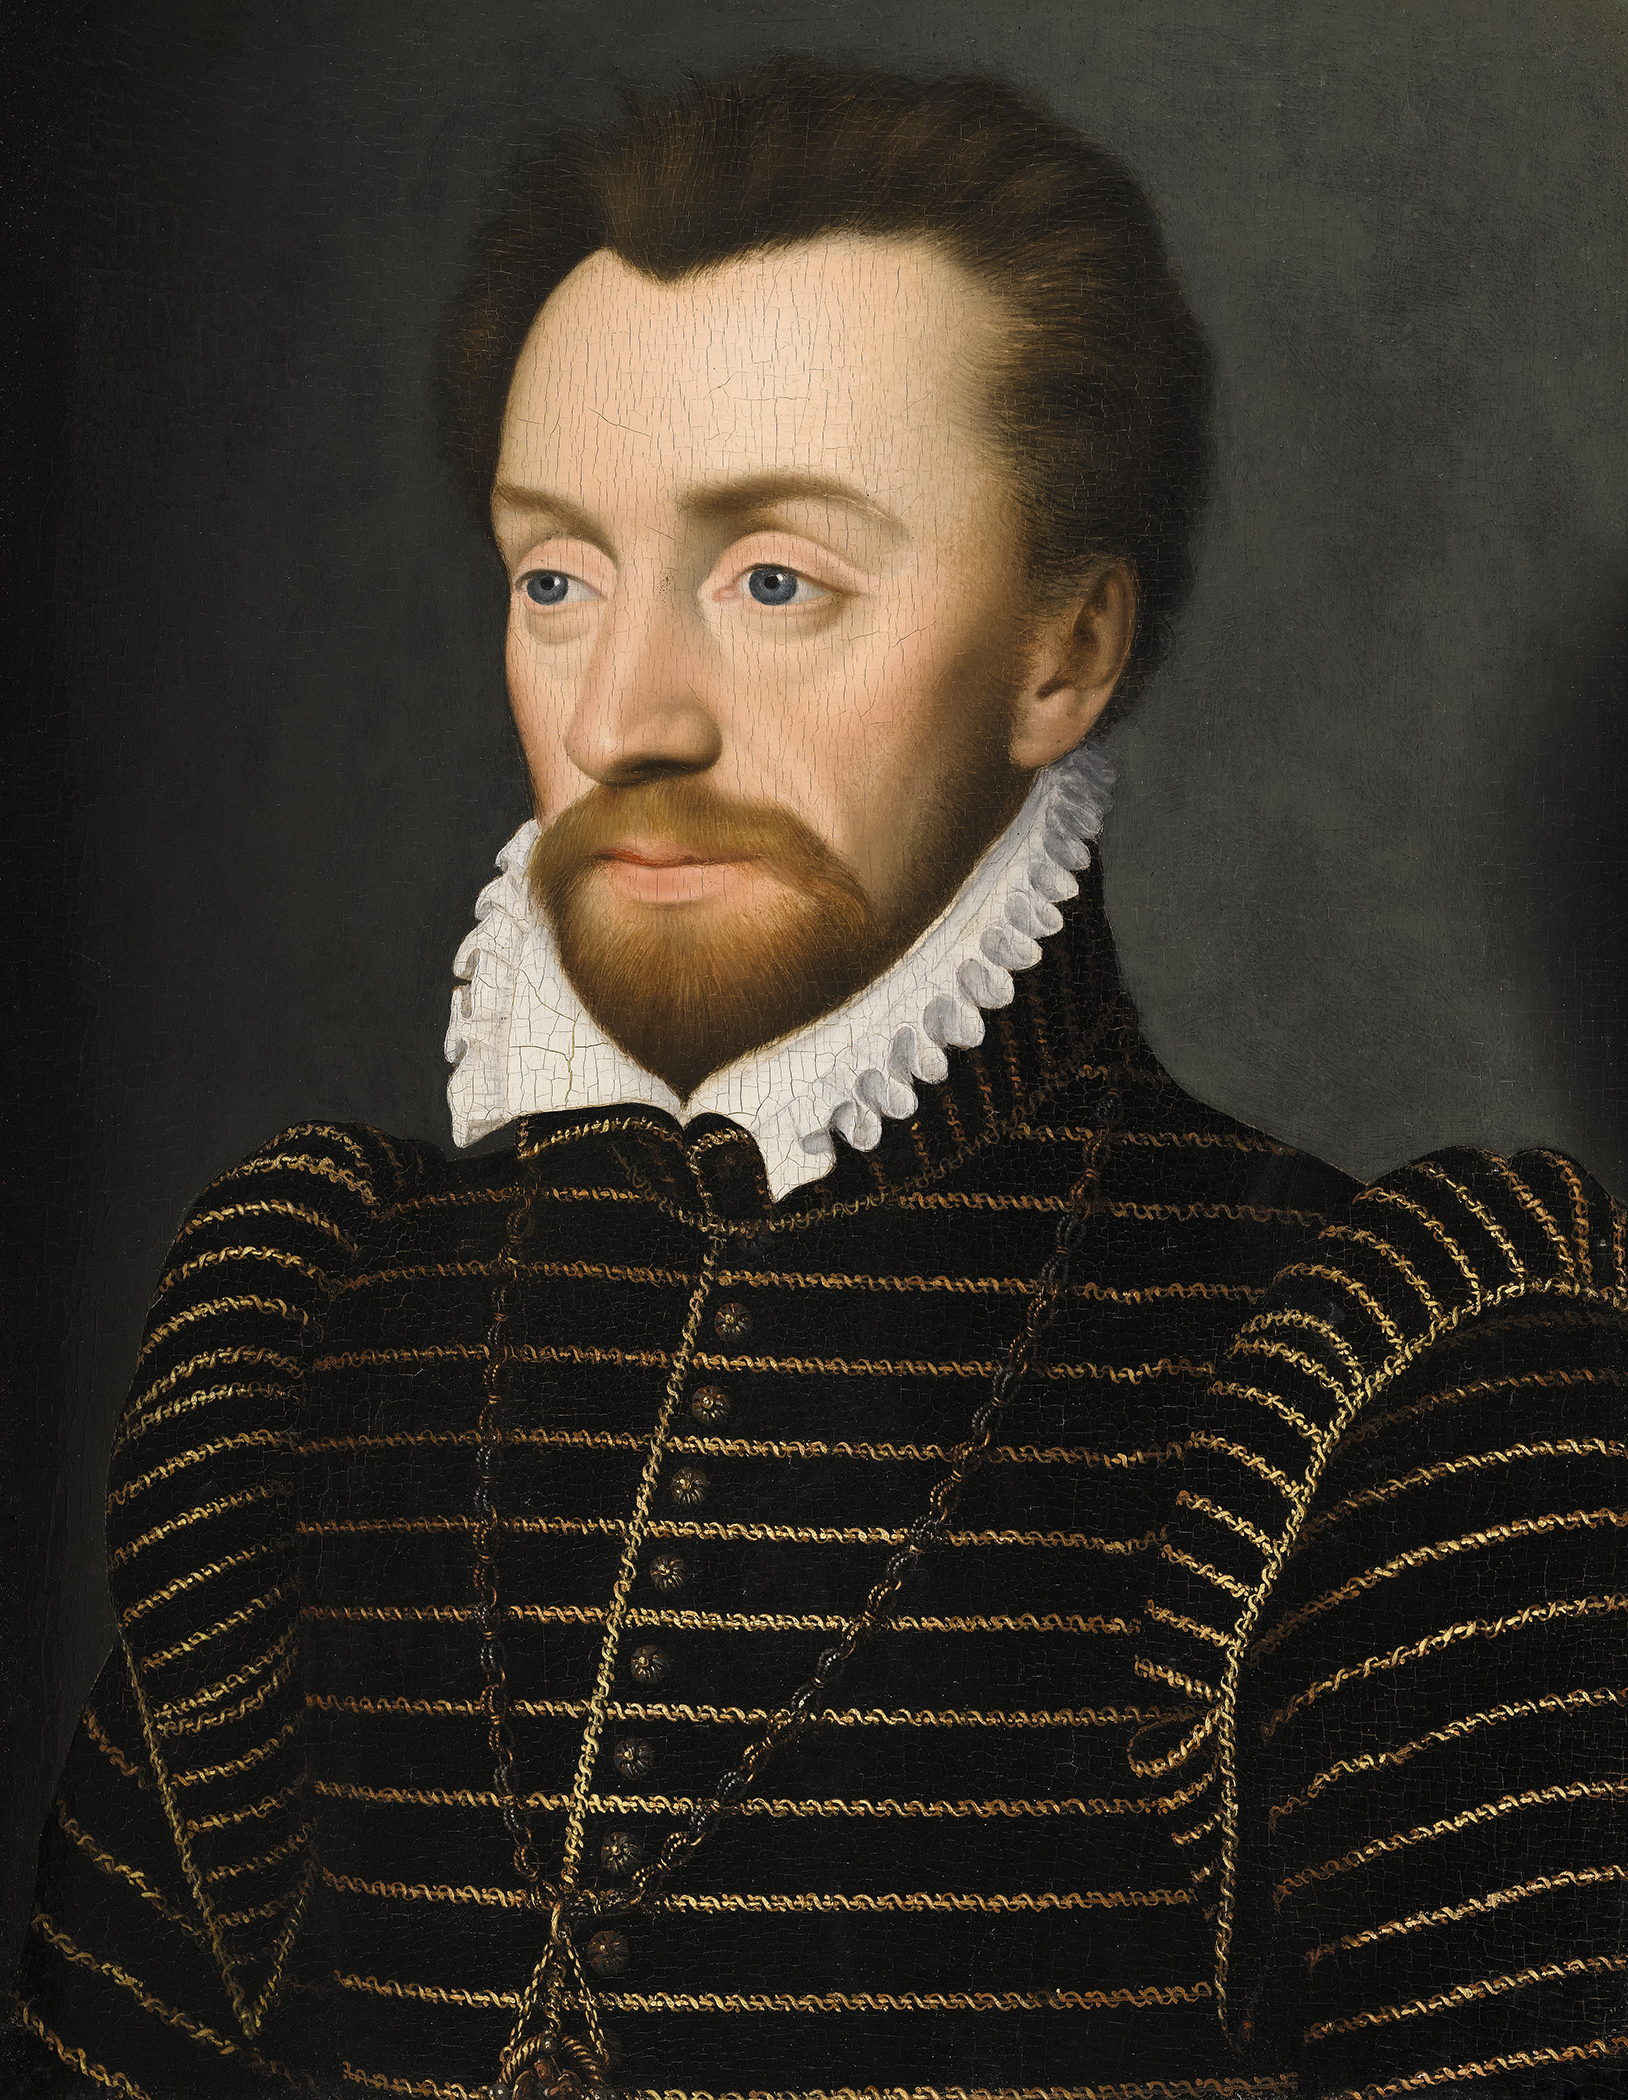 Portrait of Louis de Bourbon (1530-1569), Prince du sang, Prince of Condé (1546-1569), Huguenot leader and general (1562-1569) | Portraits of Kings